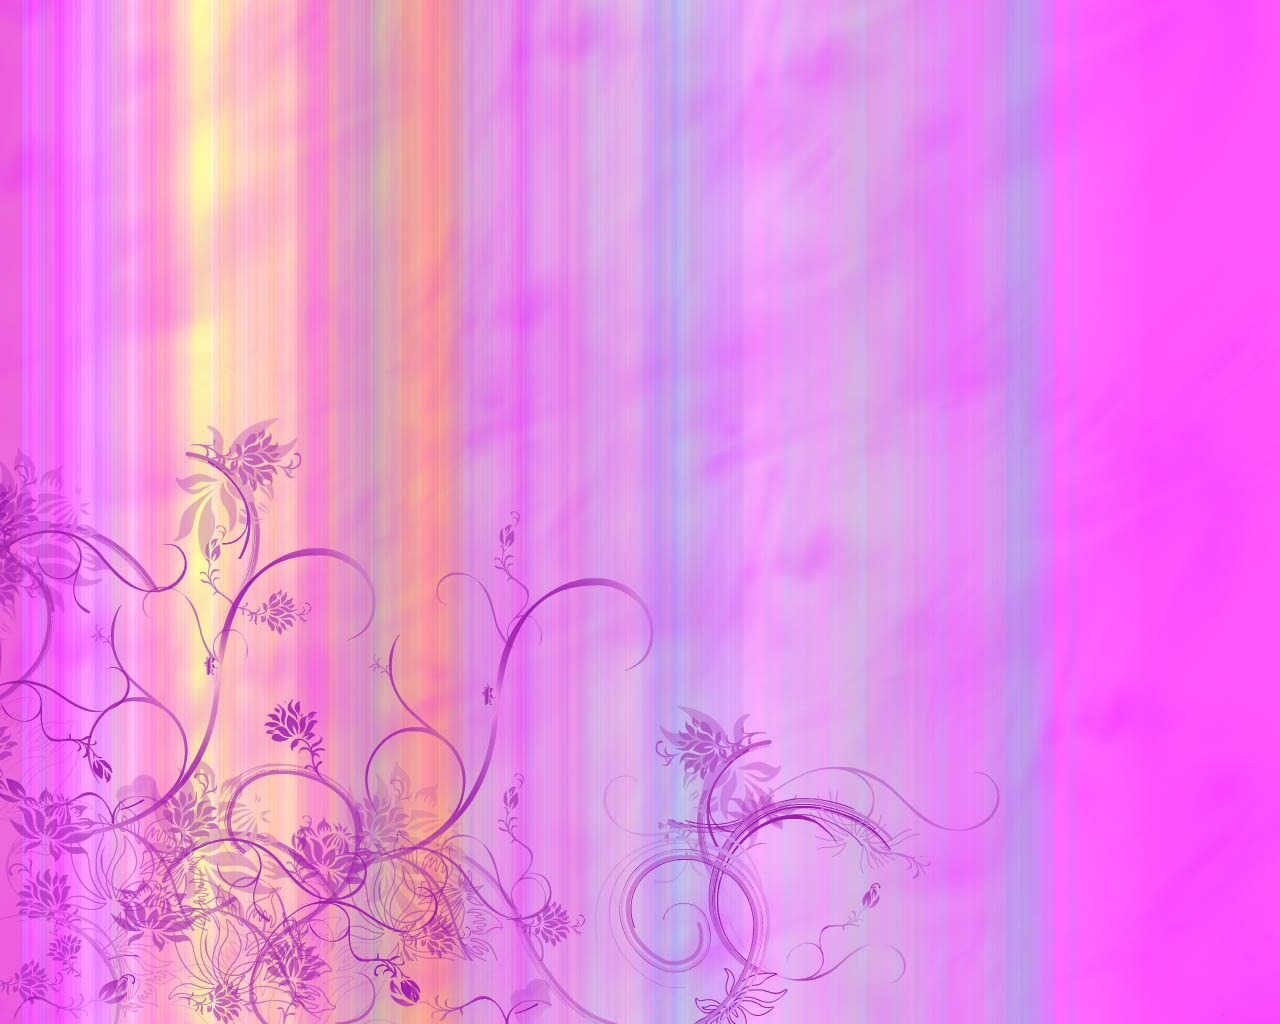 pink-wallpaper background